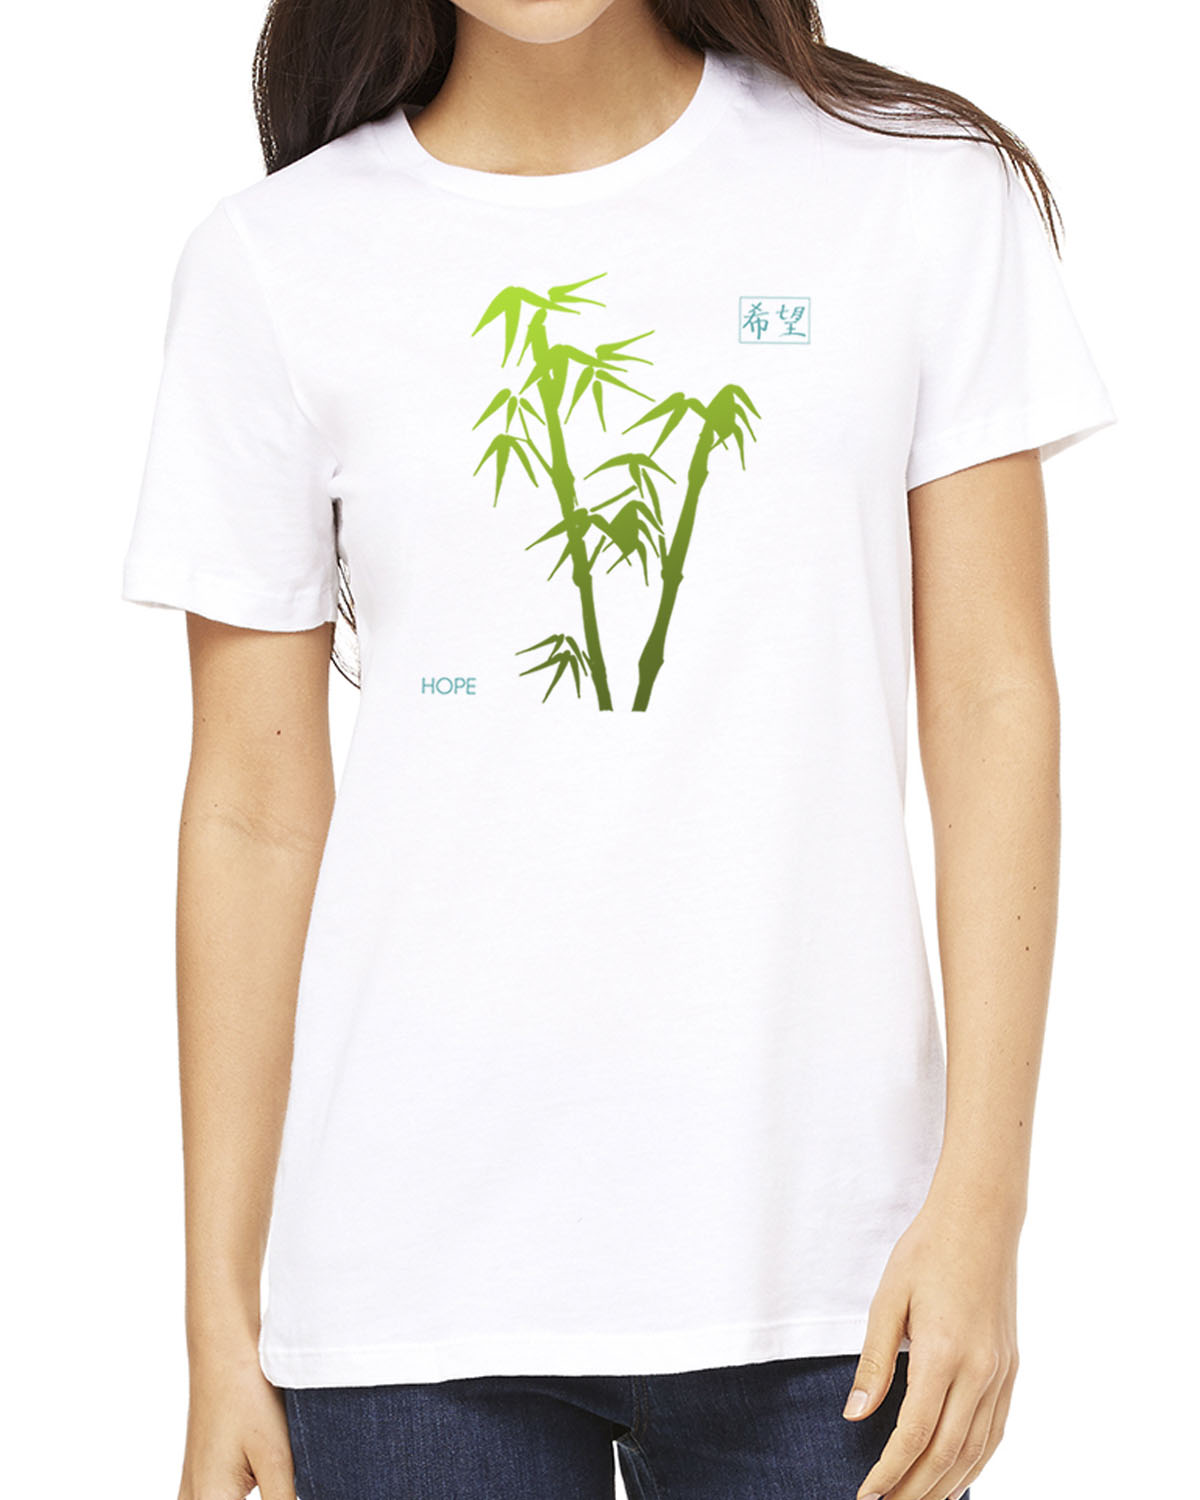 Women's short sleeve t-shirt (white)